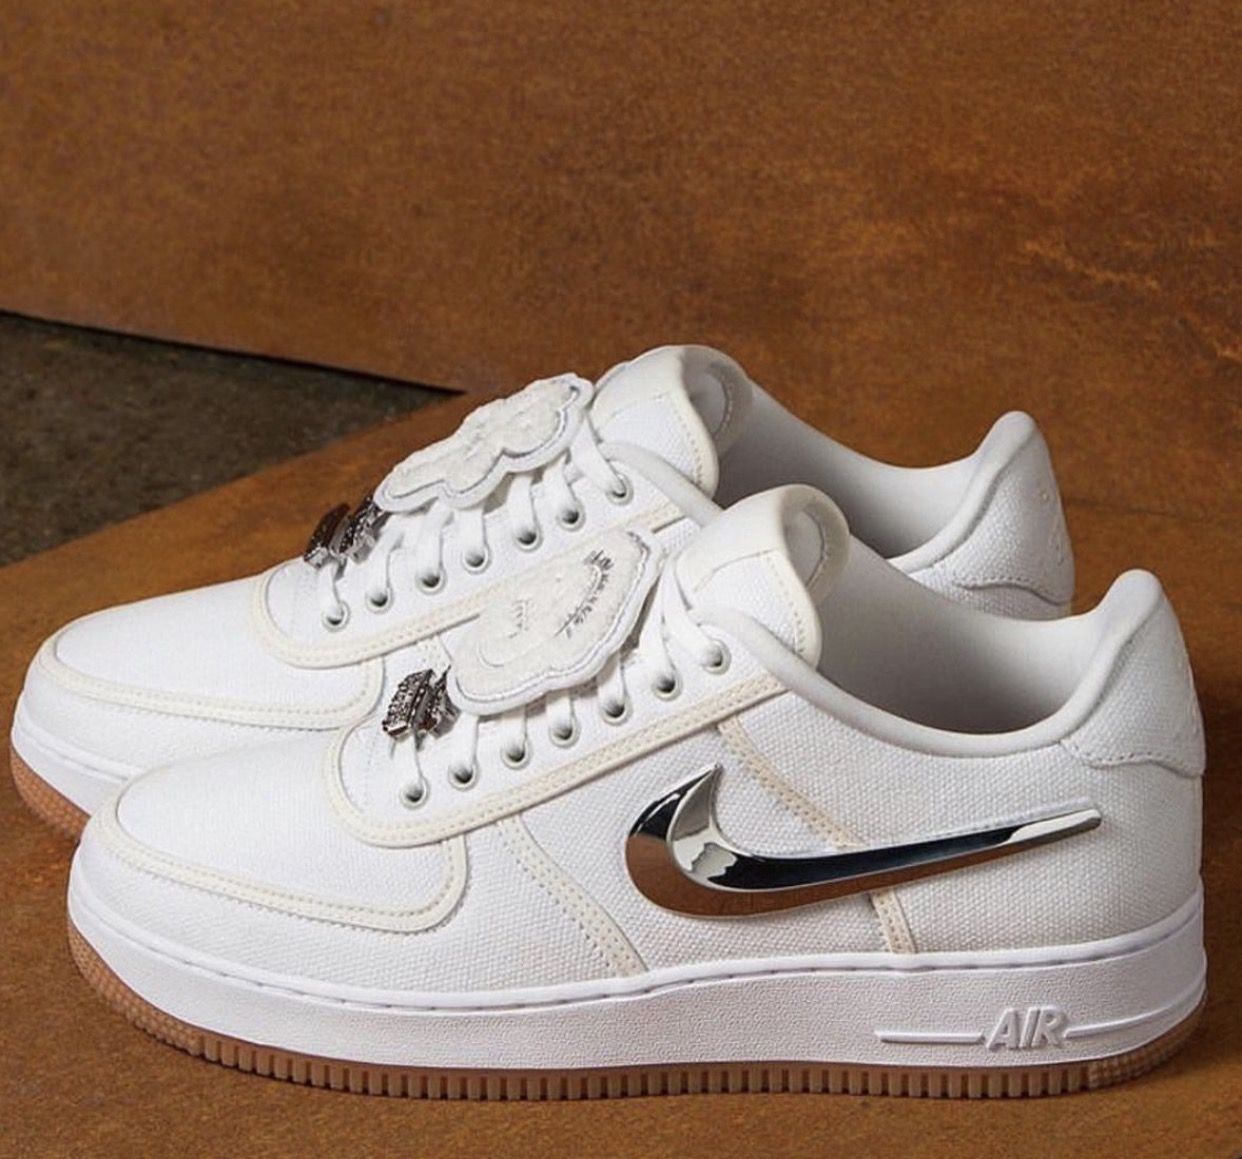 new product c0201 e89e4 AIR FORCE 1 low TRAVIS SCOTT